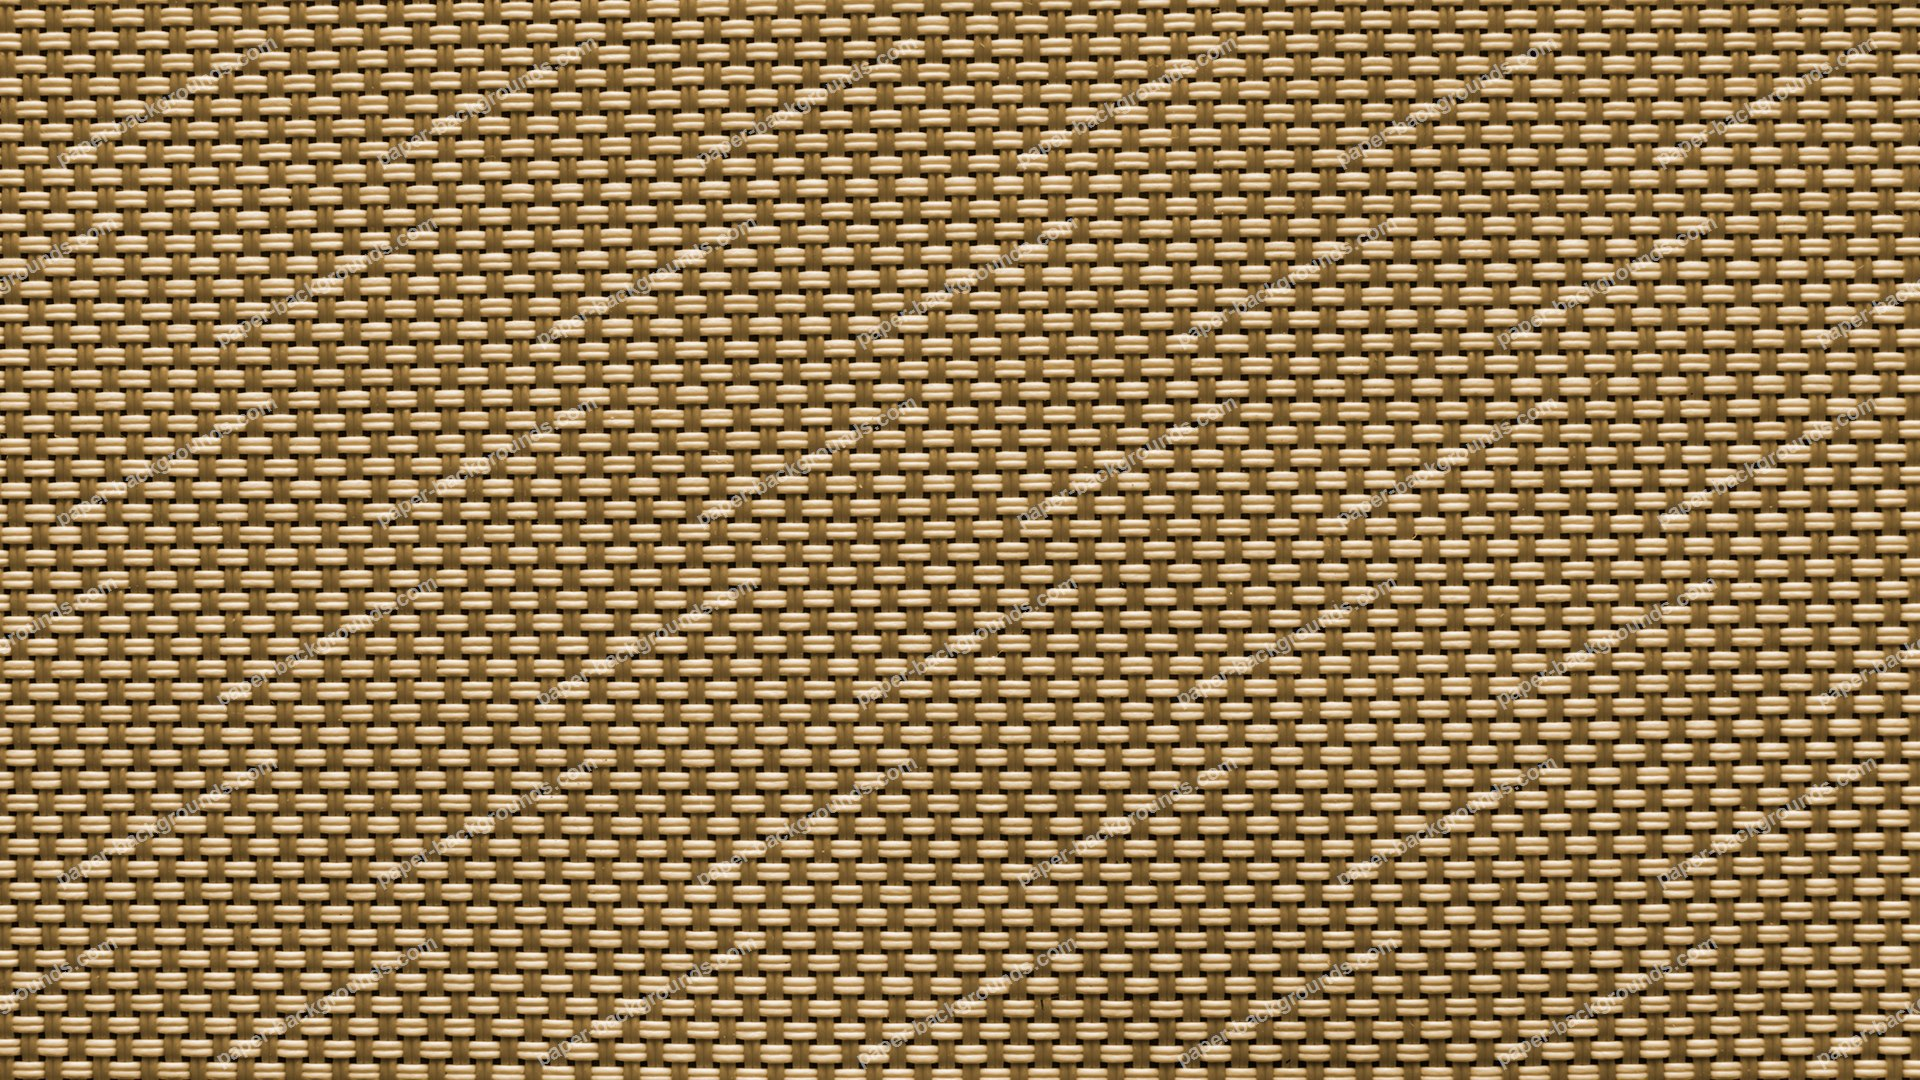 Chequered Brown Squares Canvas Texture HD 1920 x 1080p